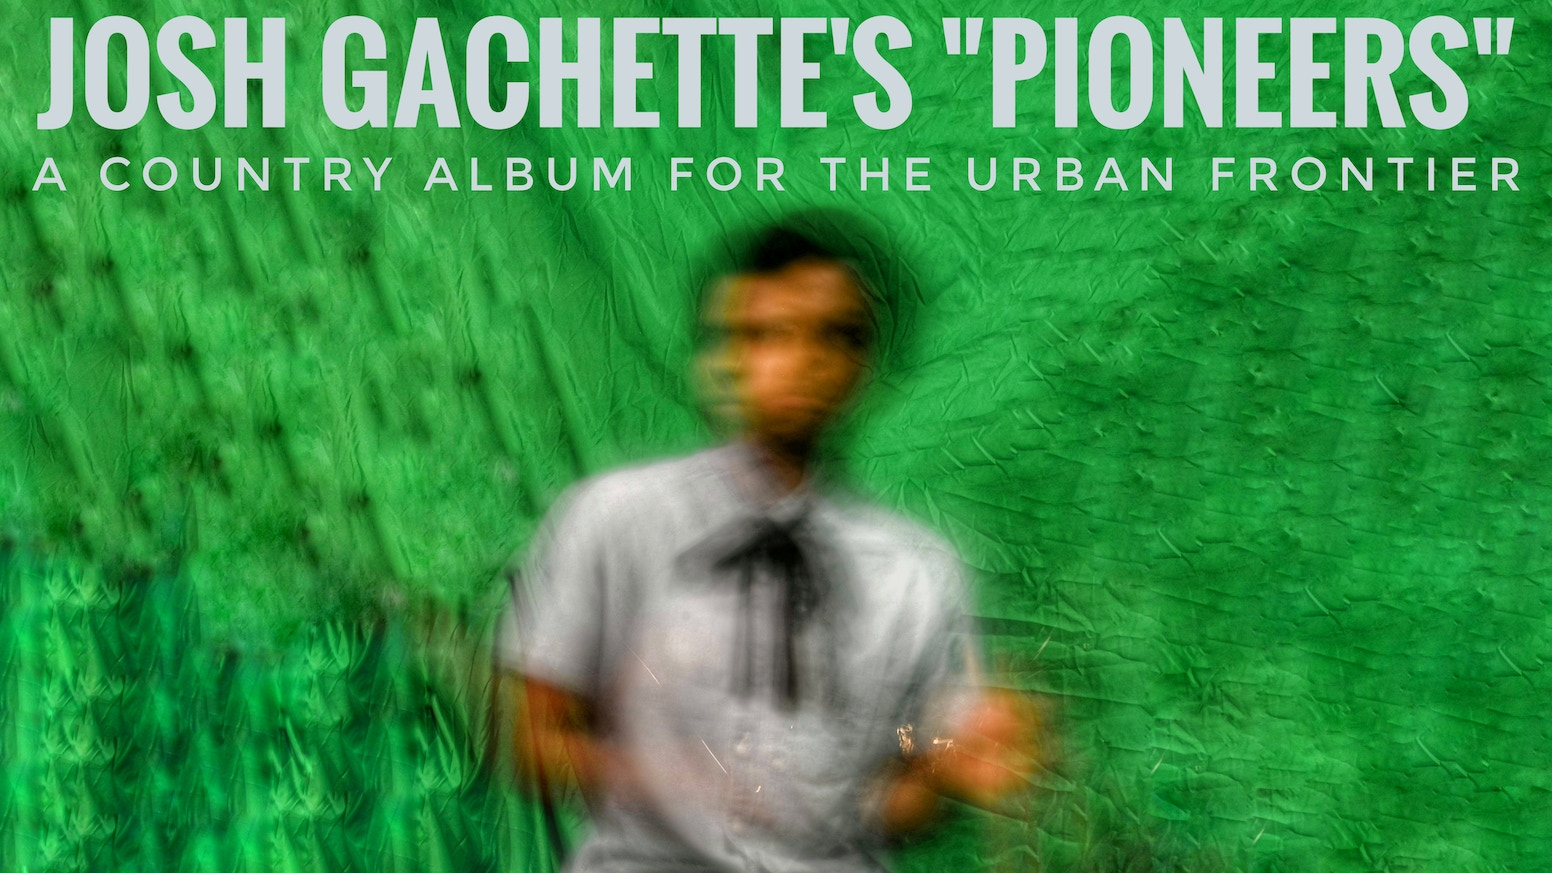 Pioneers : a country album for the urban frontier